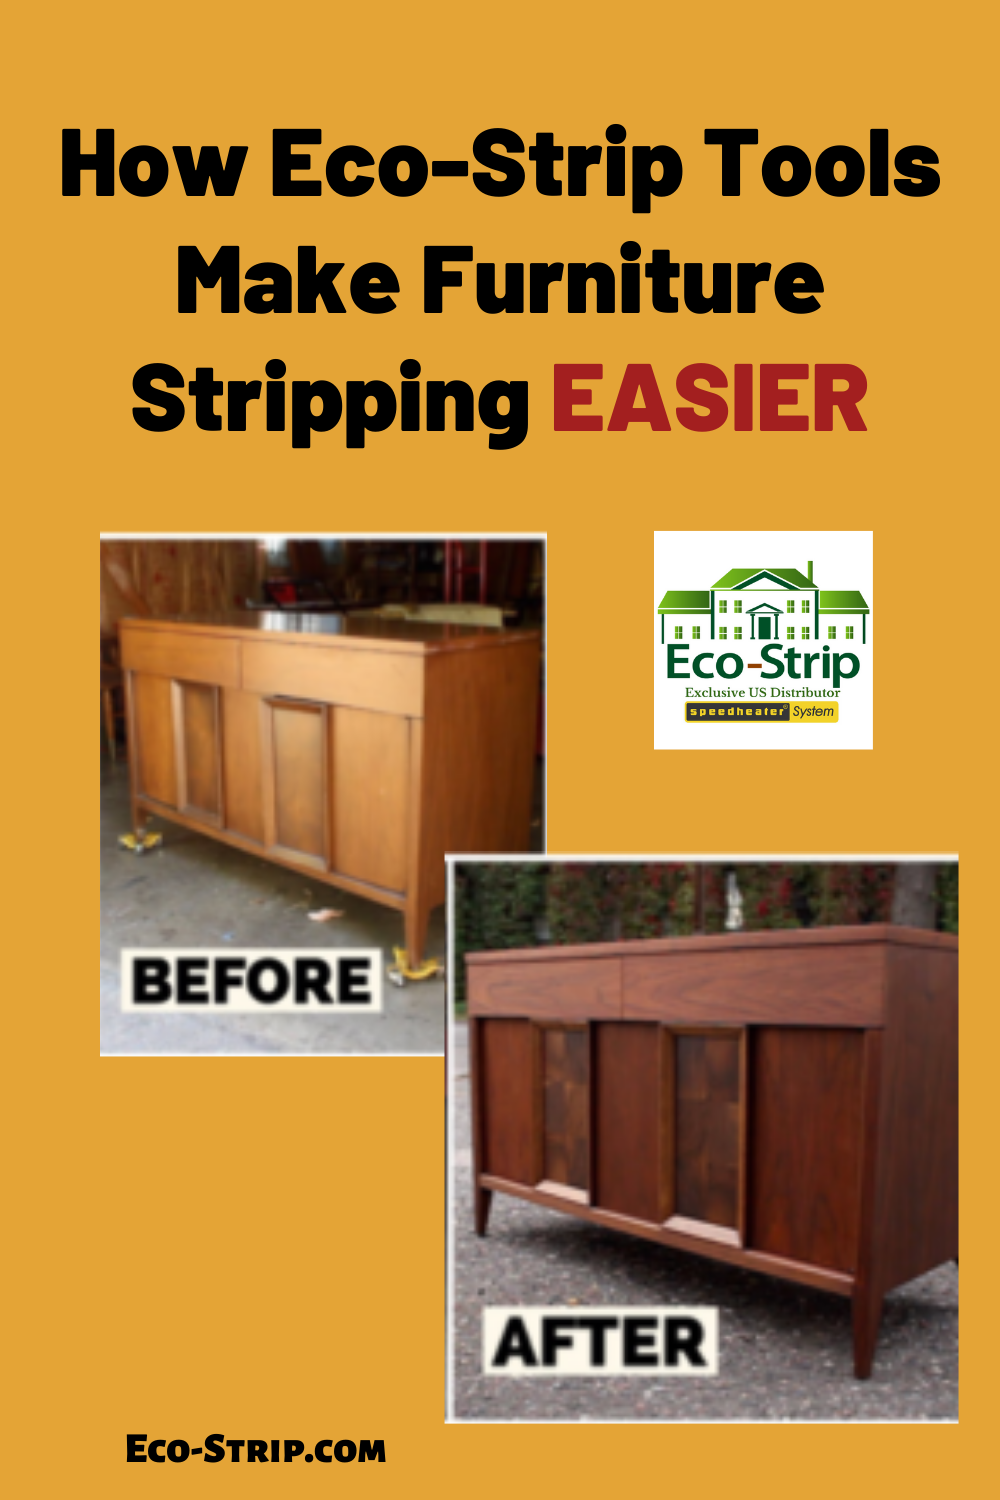 When done correctly, refinishing furniture can restore it to its original beauty and give new life to older pieces. One of the main reasons people choose to refinish furniture is to preserve the value of their investment and extent its life. Refinishing allows you to update the style of older pieces yet keep the high-quality wood and unique, old hardware not commonly found in newer, mass-produced furniture.  #furniturestripping #paintremoval #eco_strip #speedheater #furniturerestoration